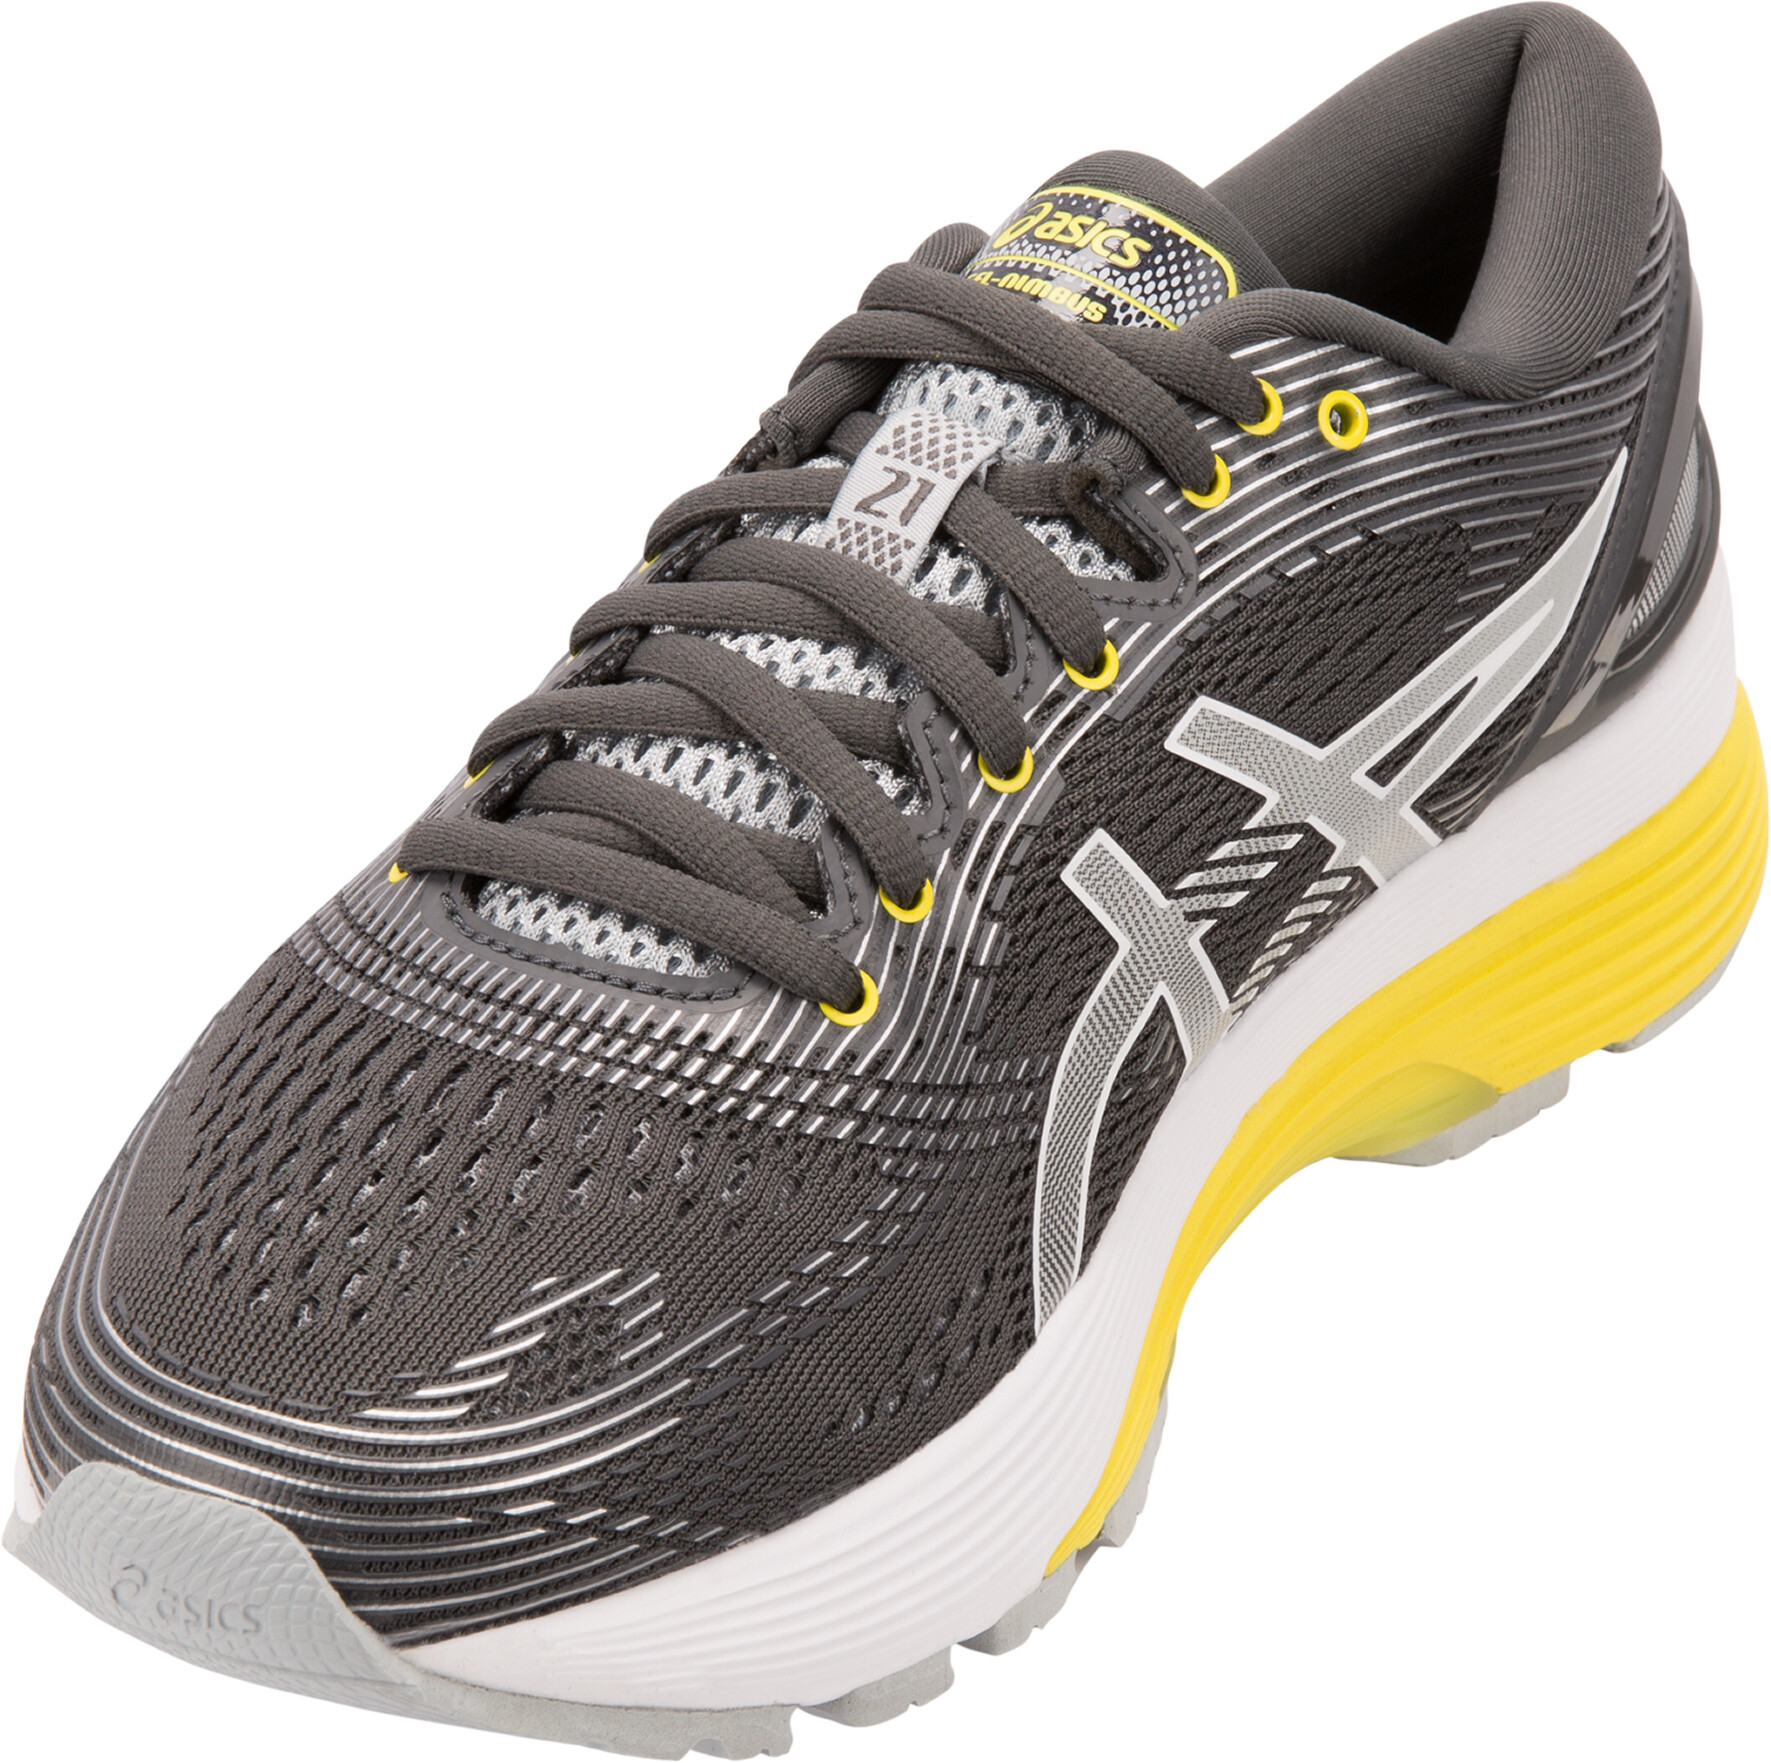 asics Gel-Nimbus 21 Sko Damer, dark grey/mid grey | Running shoes